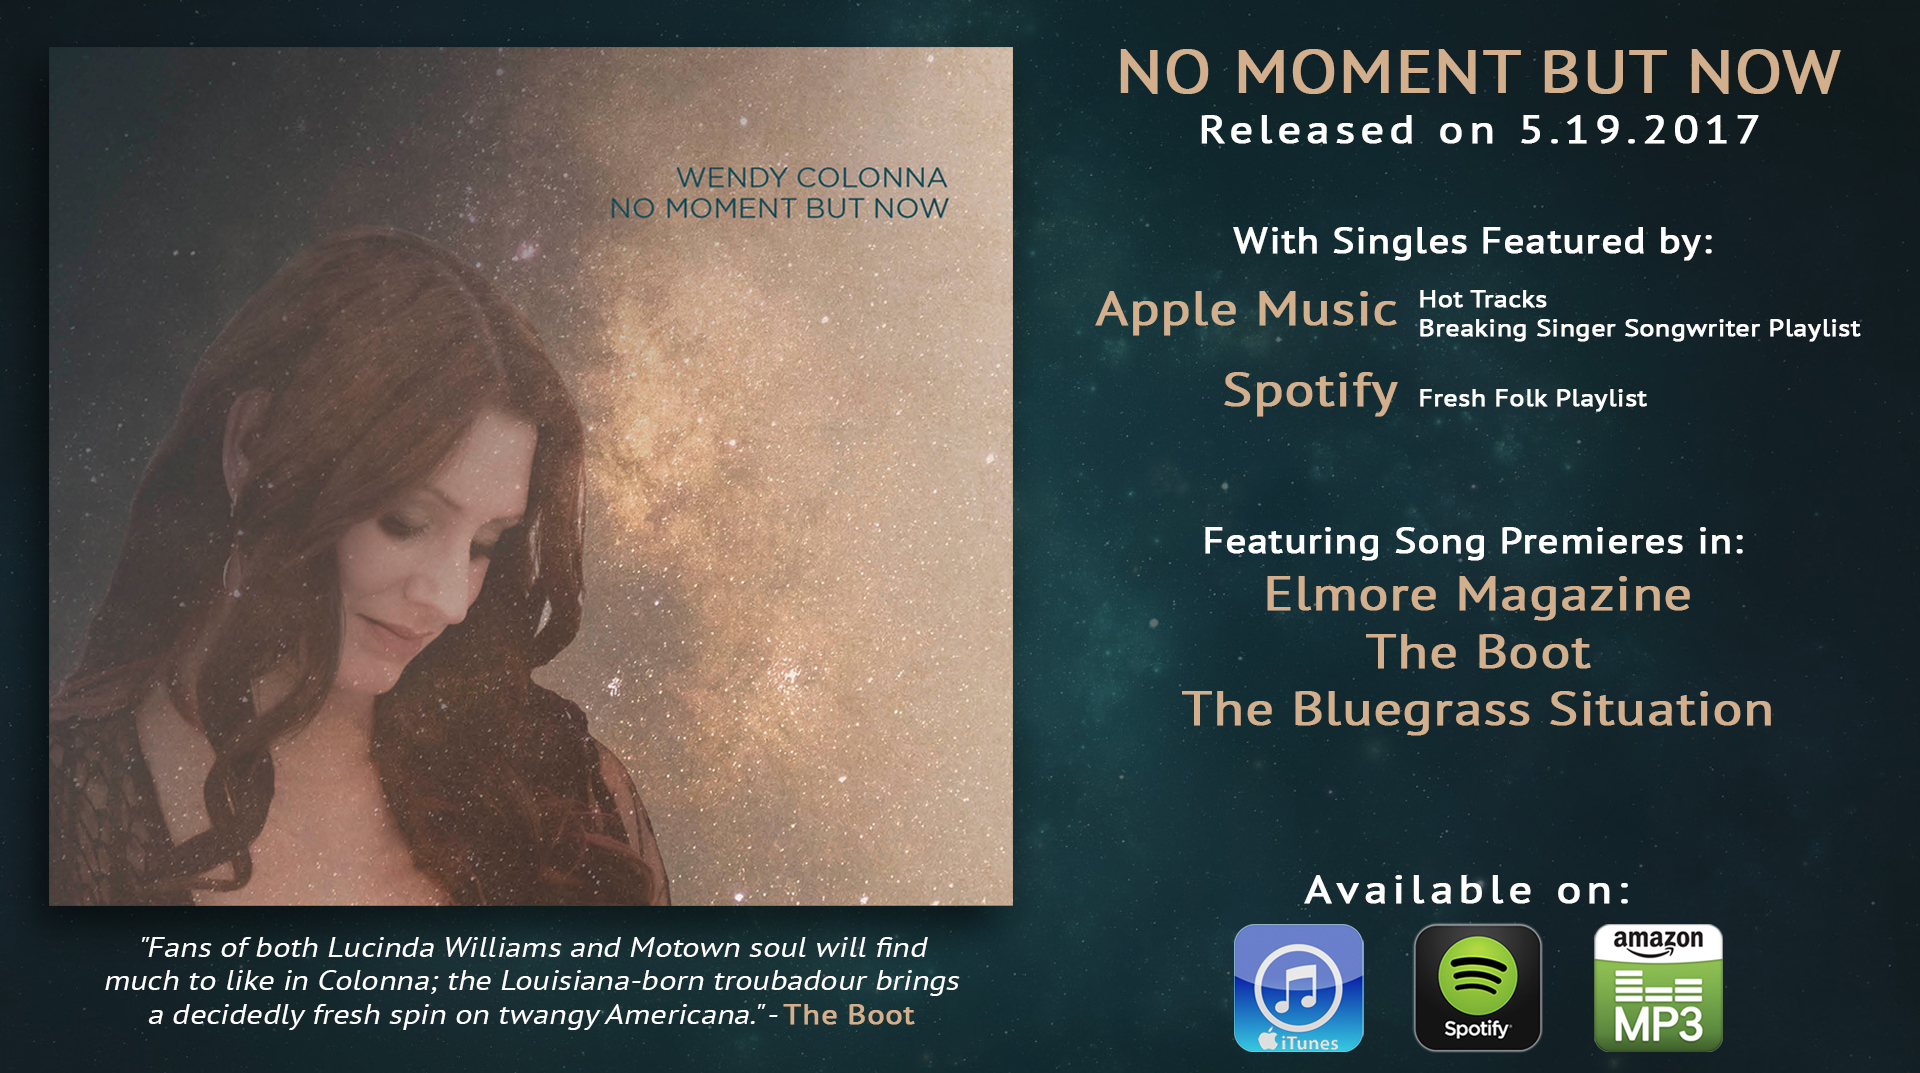 NO MOMENT BUT NOW Release